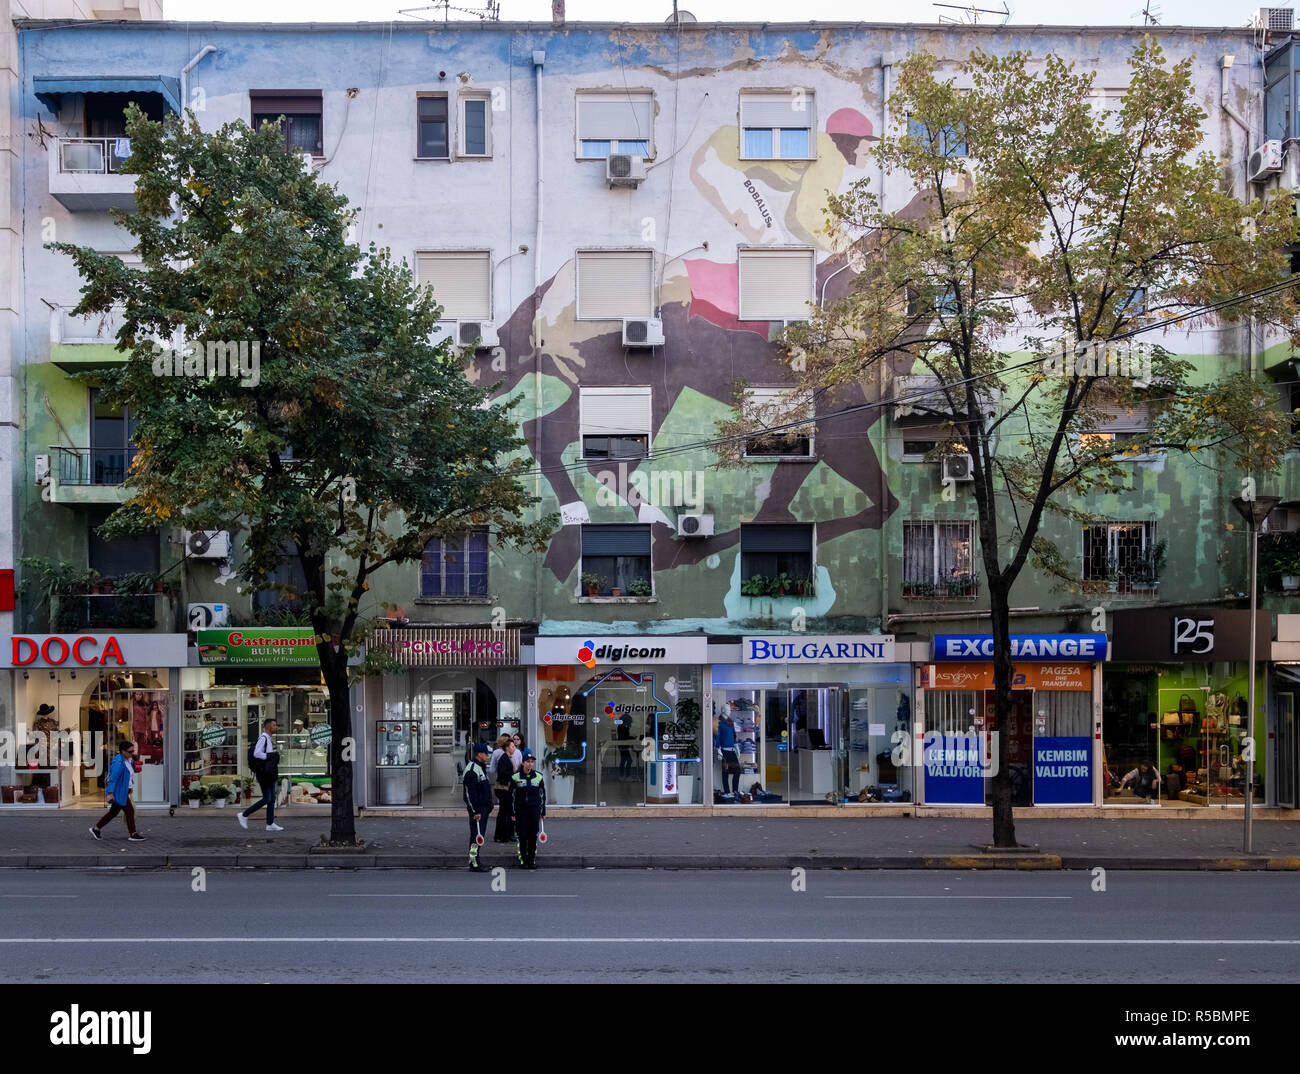 The painted facades of apartment building  by residents in colorful fashion the make city more happy.  Rare Design of a horse.  Trafic Police. - Stock Image